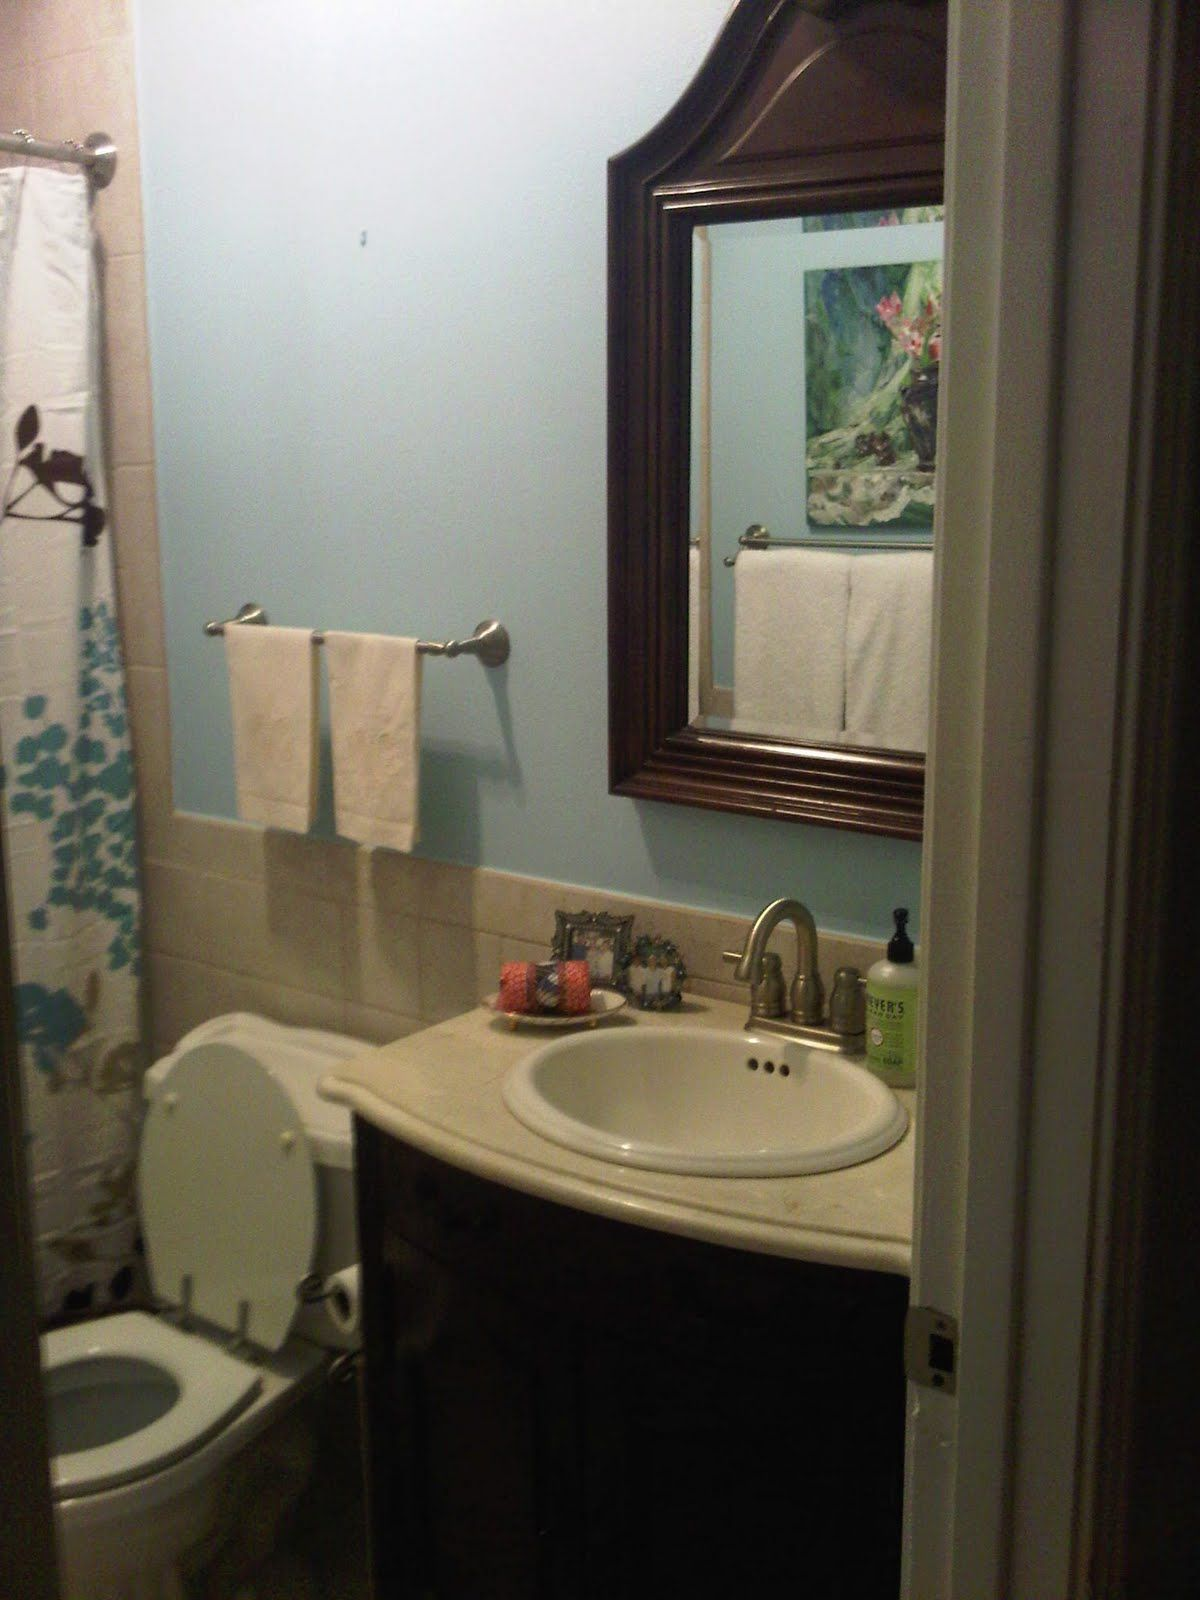 small bathroom no window paint color google search bathroom small bathroom no window paint color google search